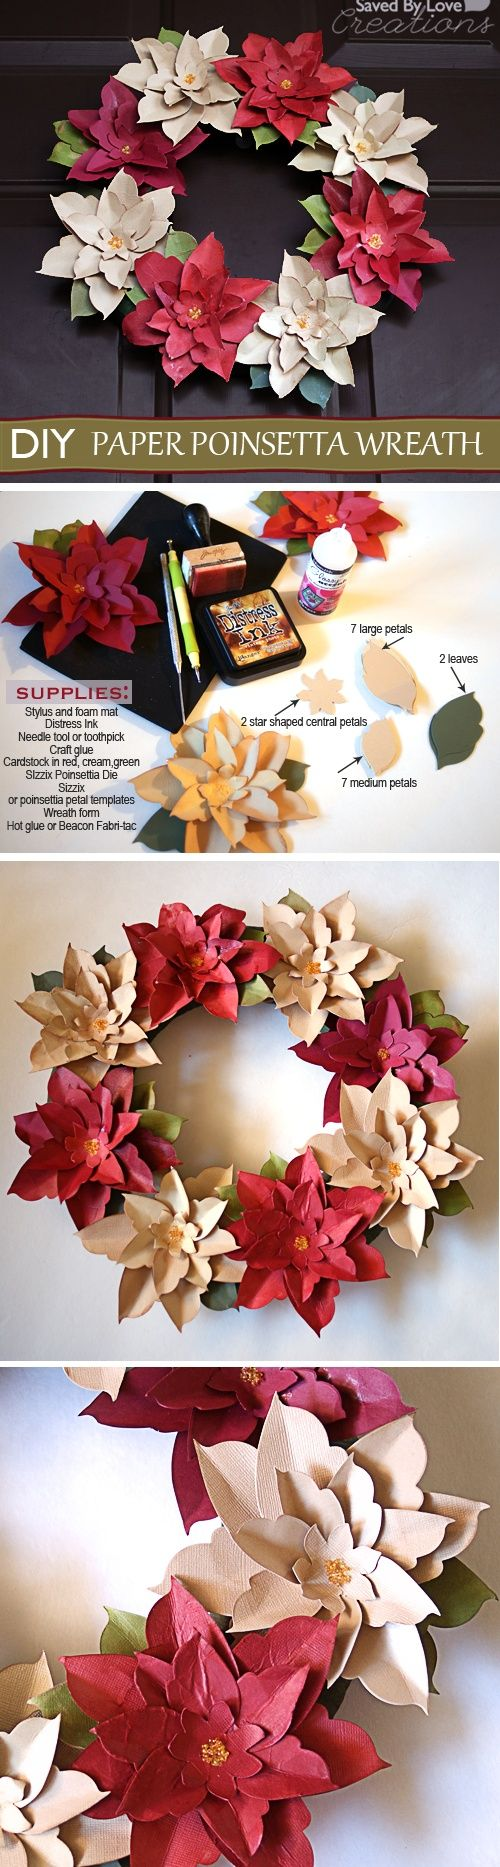 PaperCraft Poinsetta Wreath DIY Christmas | DIY Creator